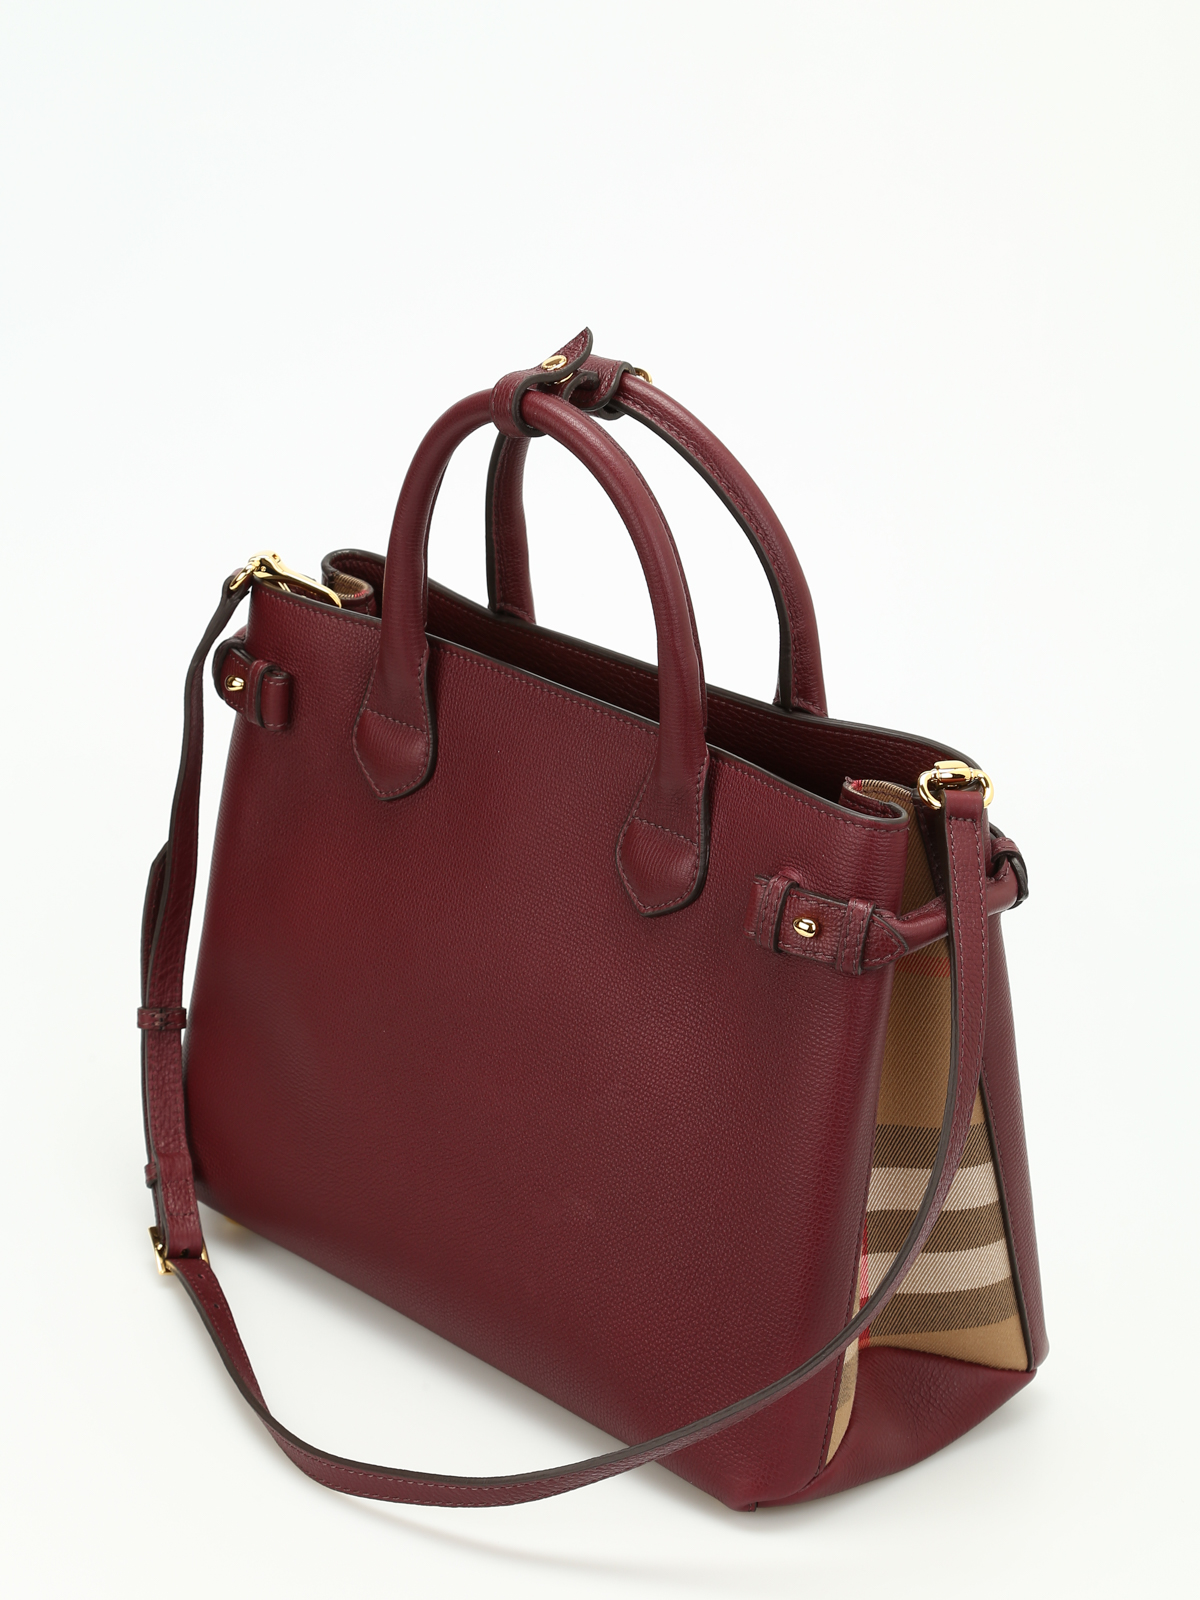 095a0aadada9 Burberry Banner Medium Leather Shoulder Bag   Burberry the banner medium  leather bag totes bags